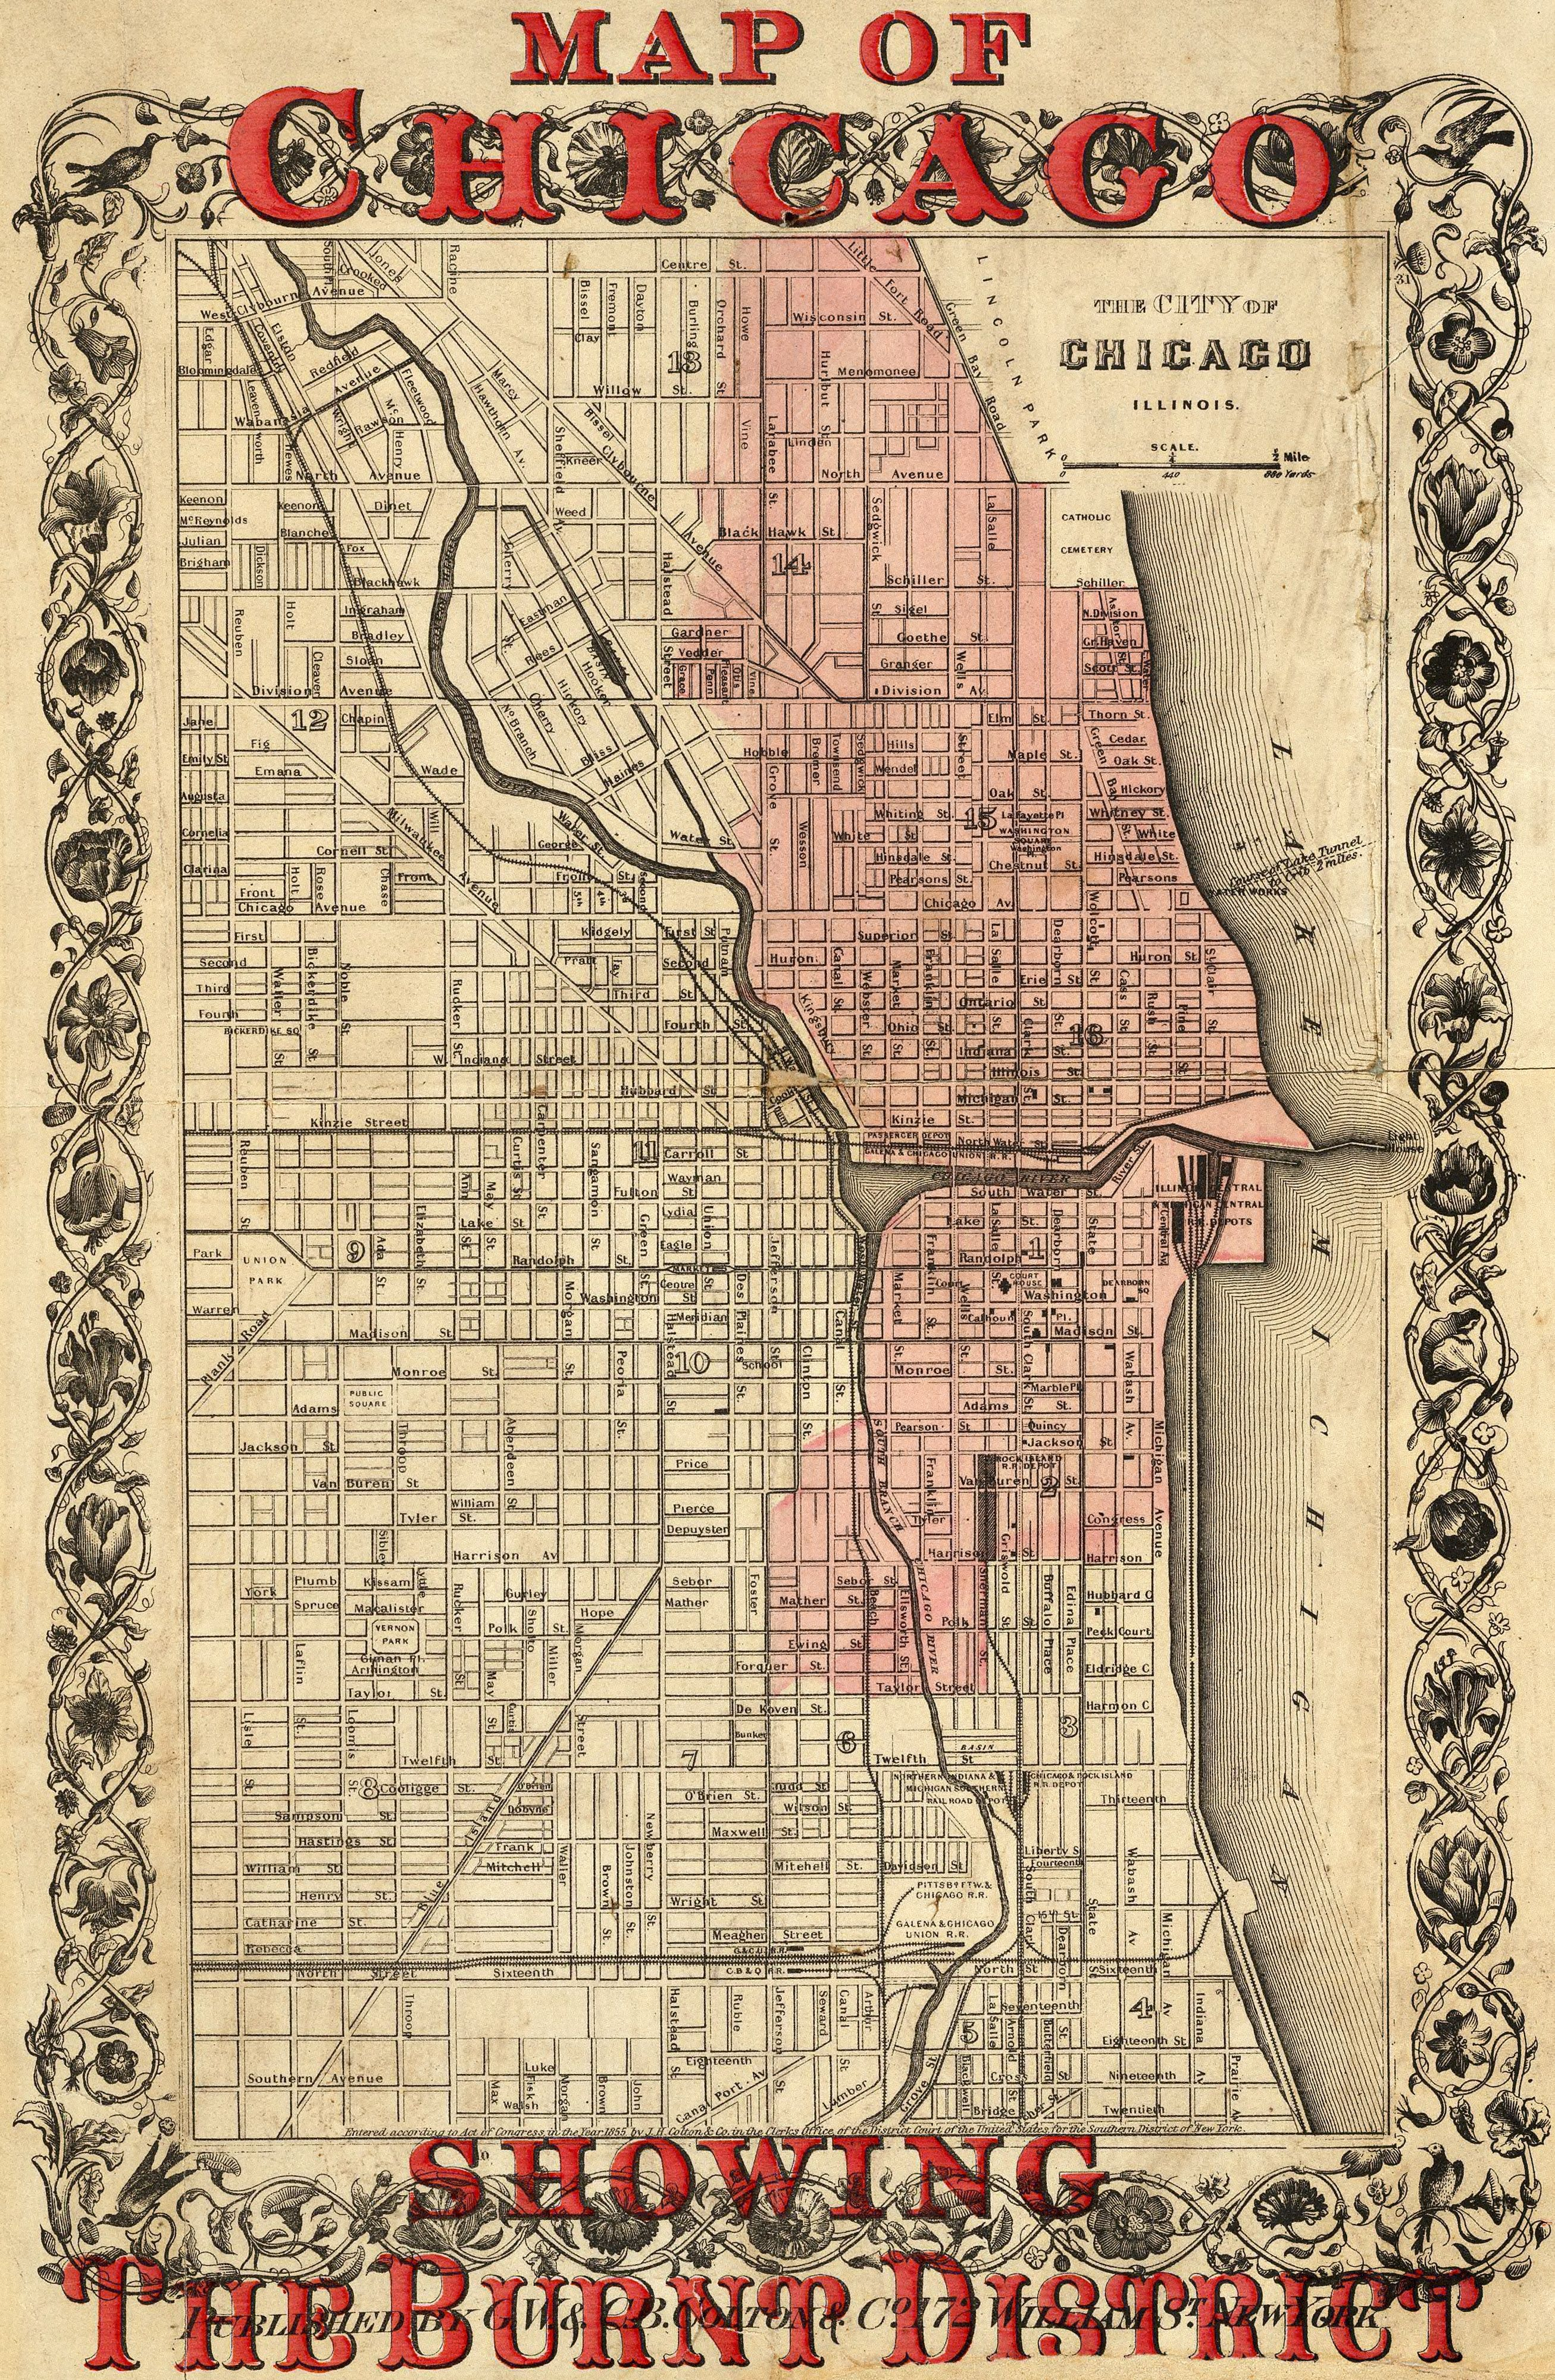 Great Chicago Fire, 1871 | History | Chicago map, Chicago Fire ...